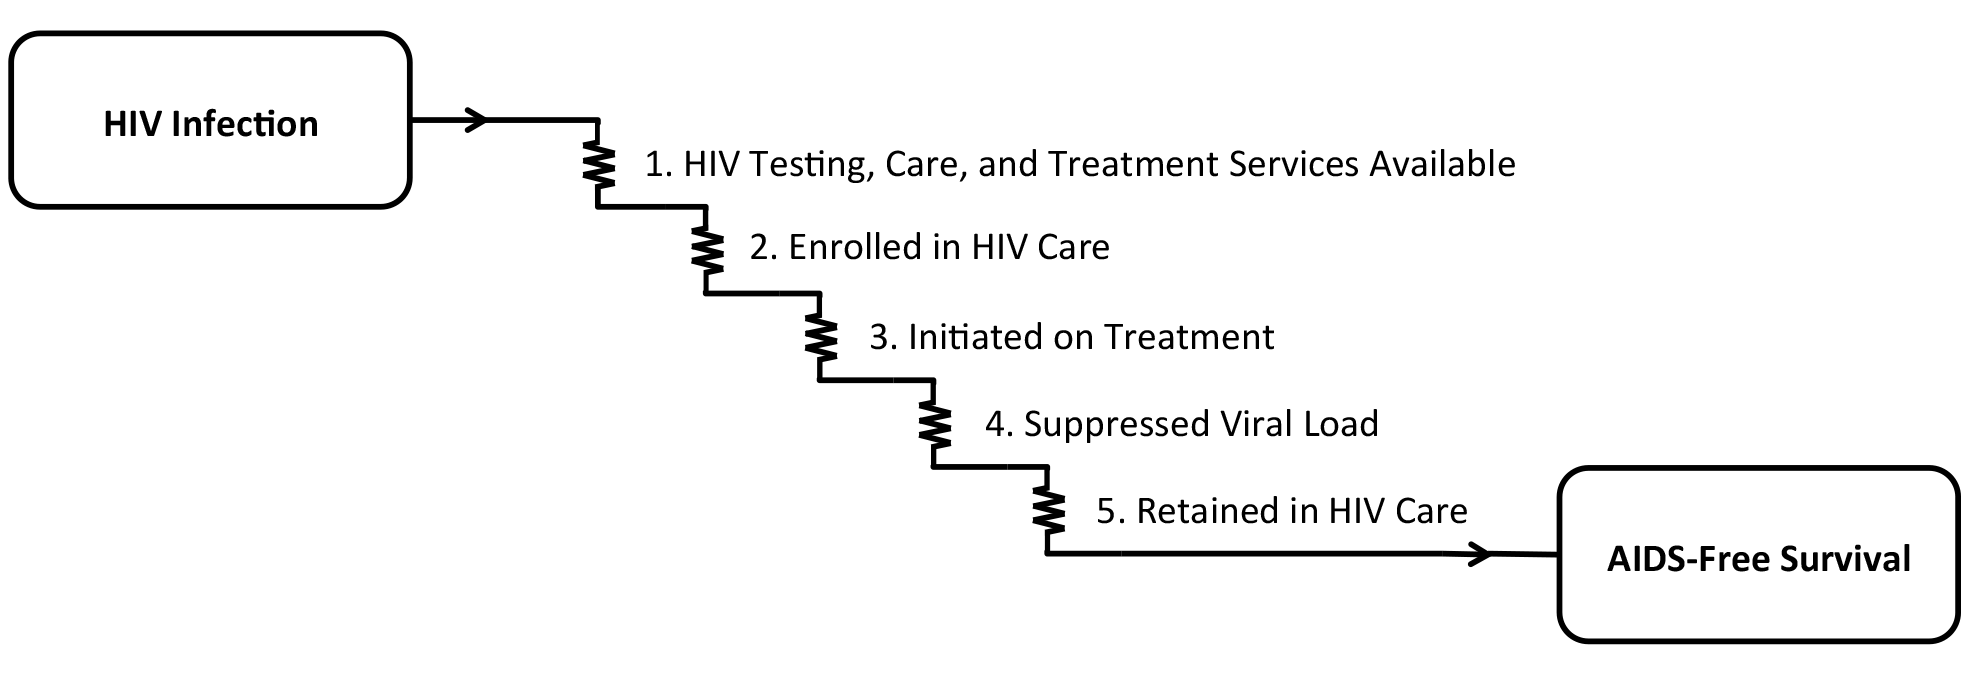 """The cascade of """"voltage drops"""" from HIV infection to AIDS-free survival."""